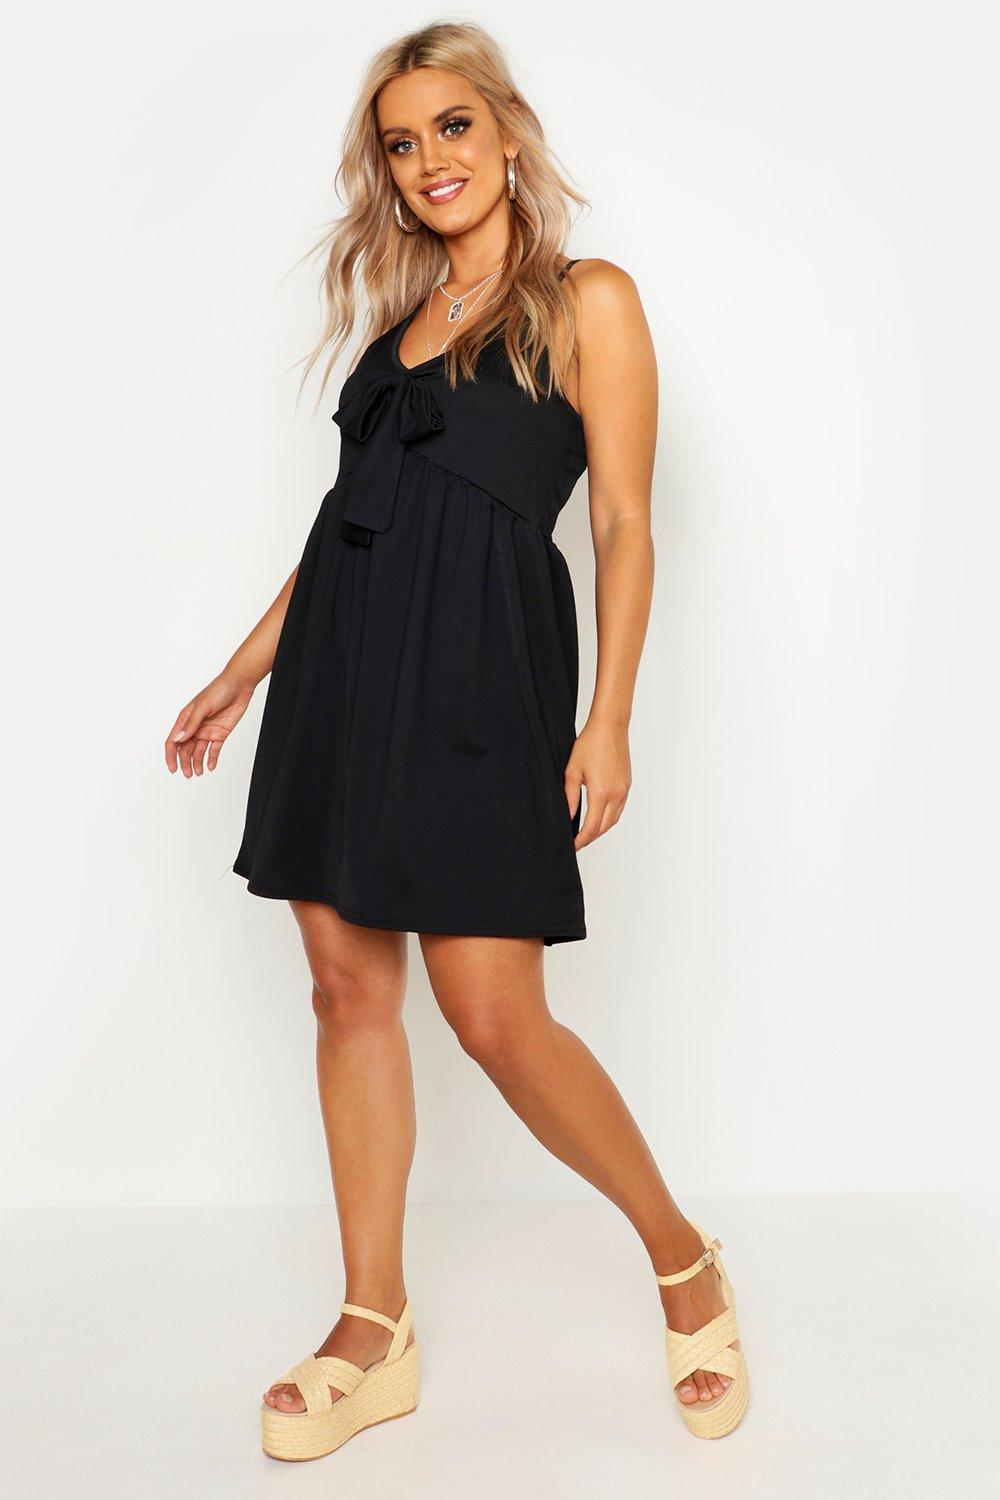 boohoo Womens Plus Tie Front Sundress - Black - 20, Black